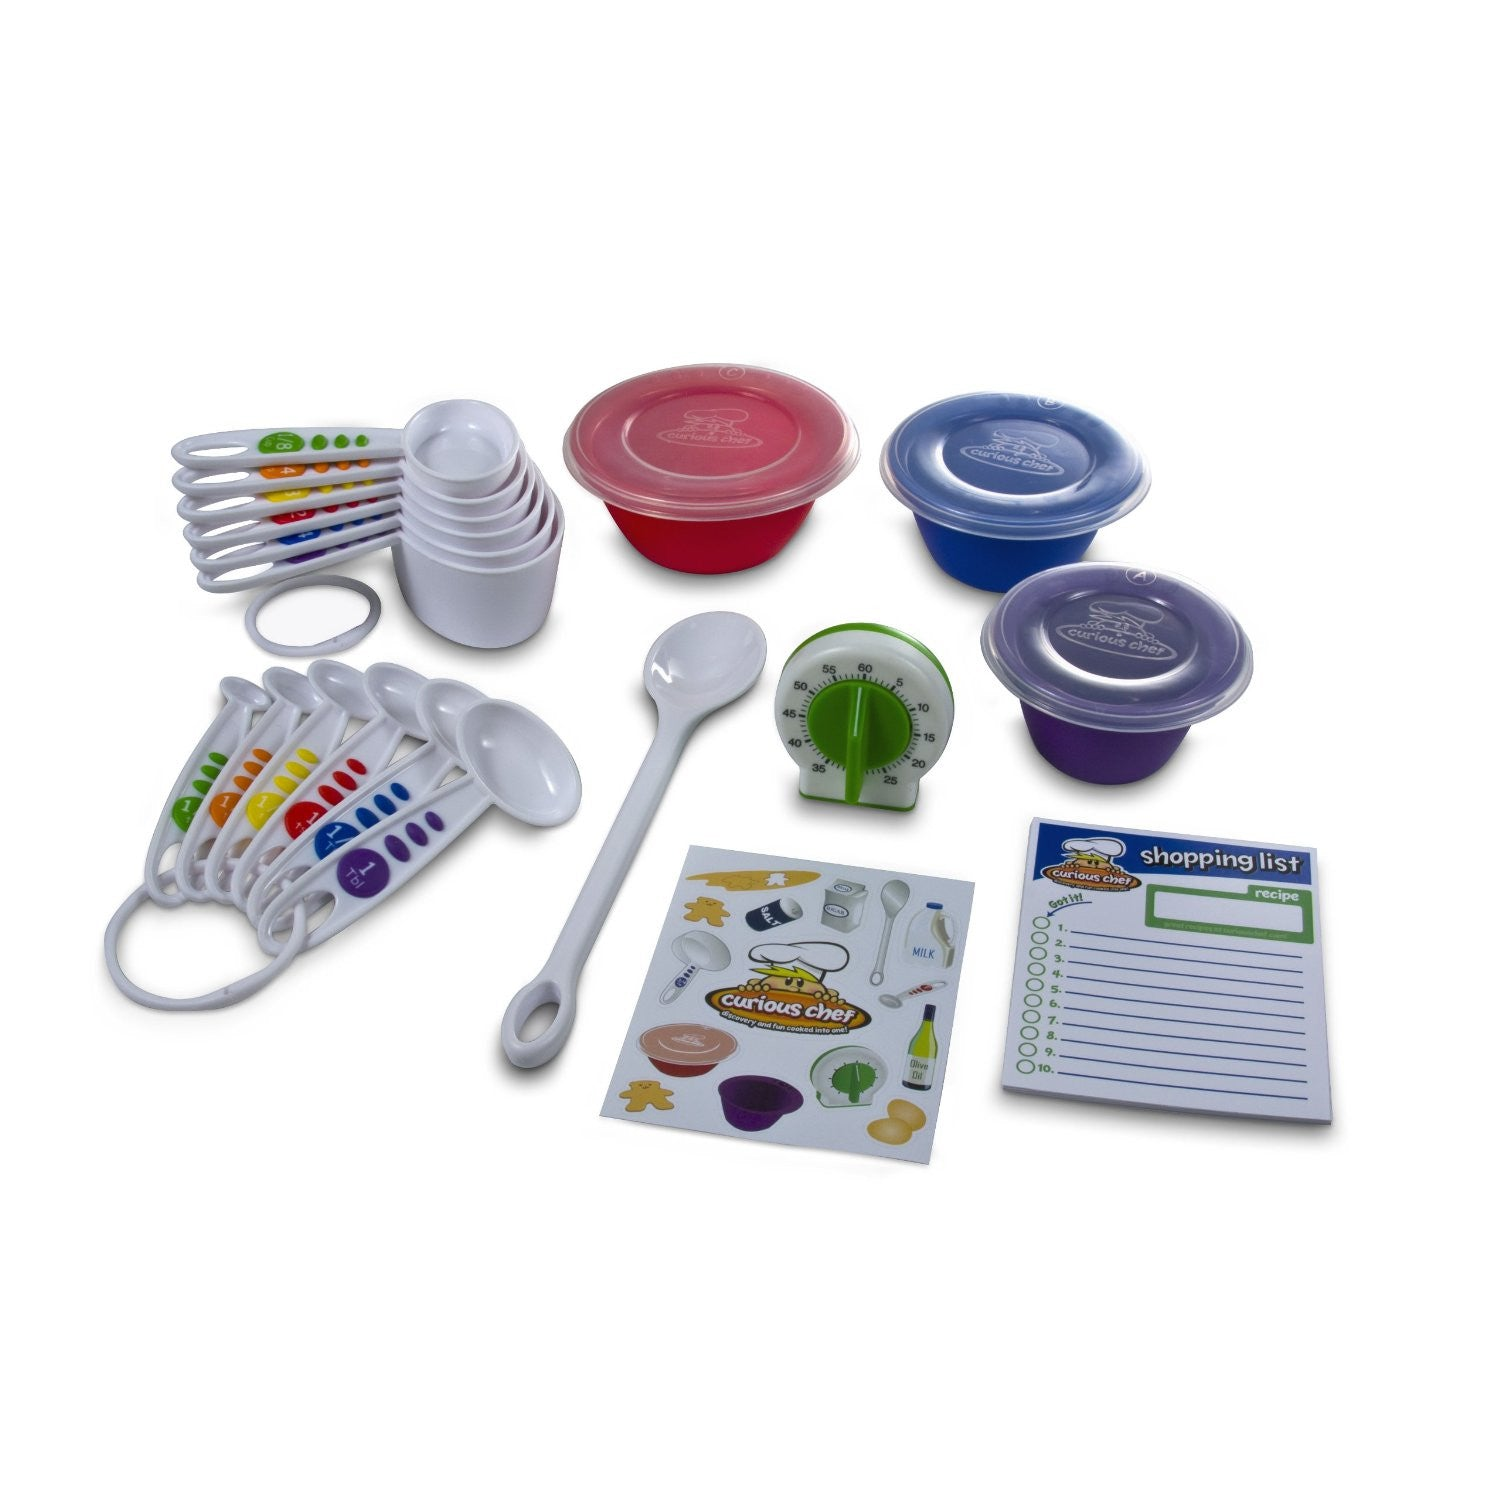 17 Piece Measure and Prep Childrens Kitchen Set from Curious Chef - Off The Wall Toys and Gifts